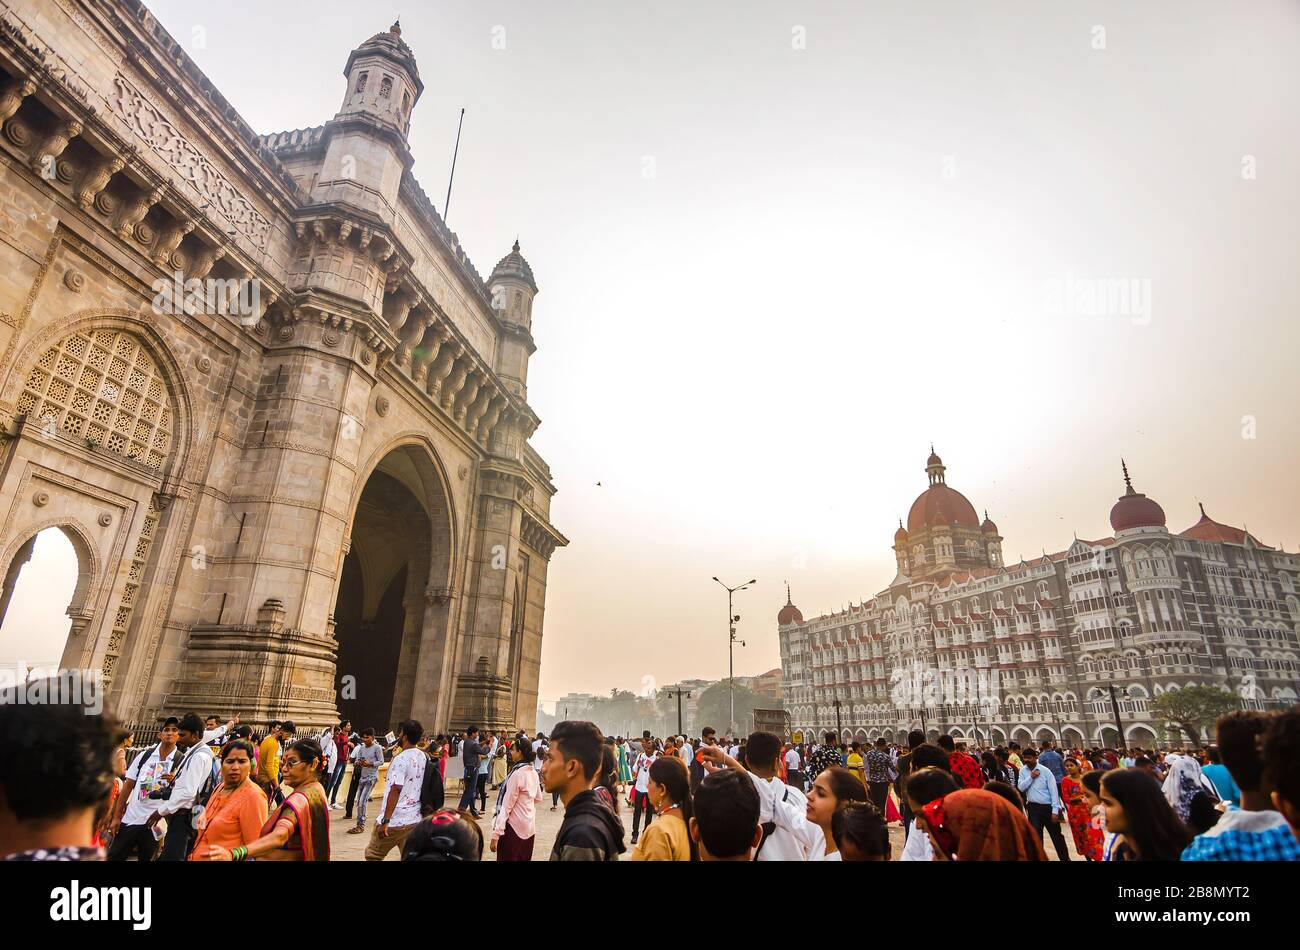 MUMBAI, INDIA – DEC. 8, 2019: Visitors enjoying near Gateway of India, opposite to the prime tourist attraction Taj Mahal Palace and Tower Hotel. Stock Photo